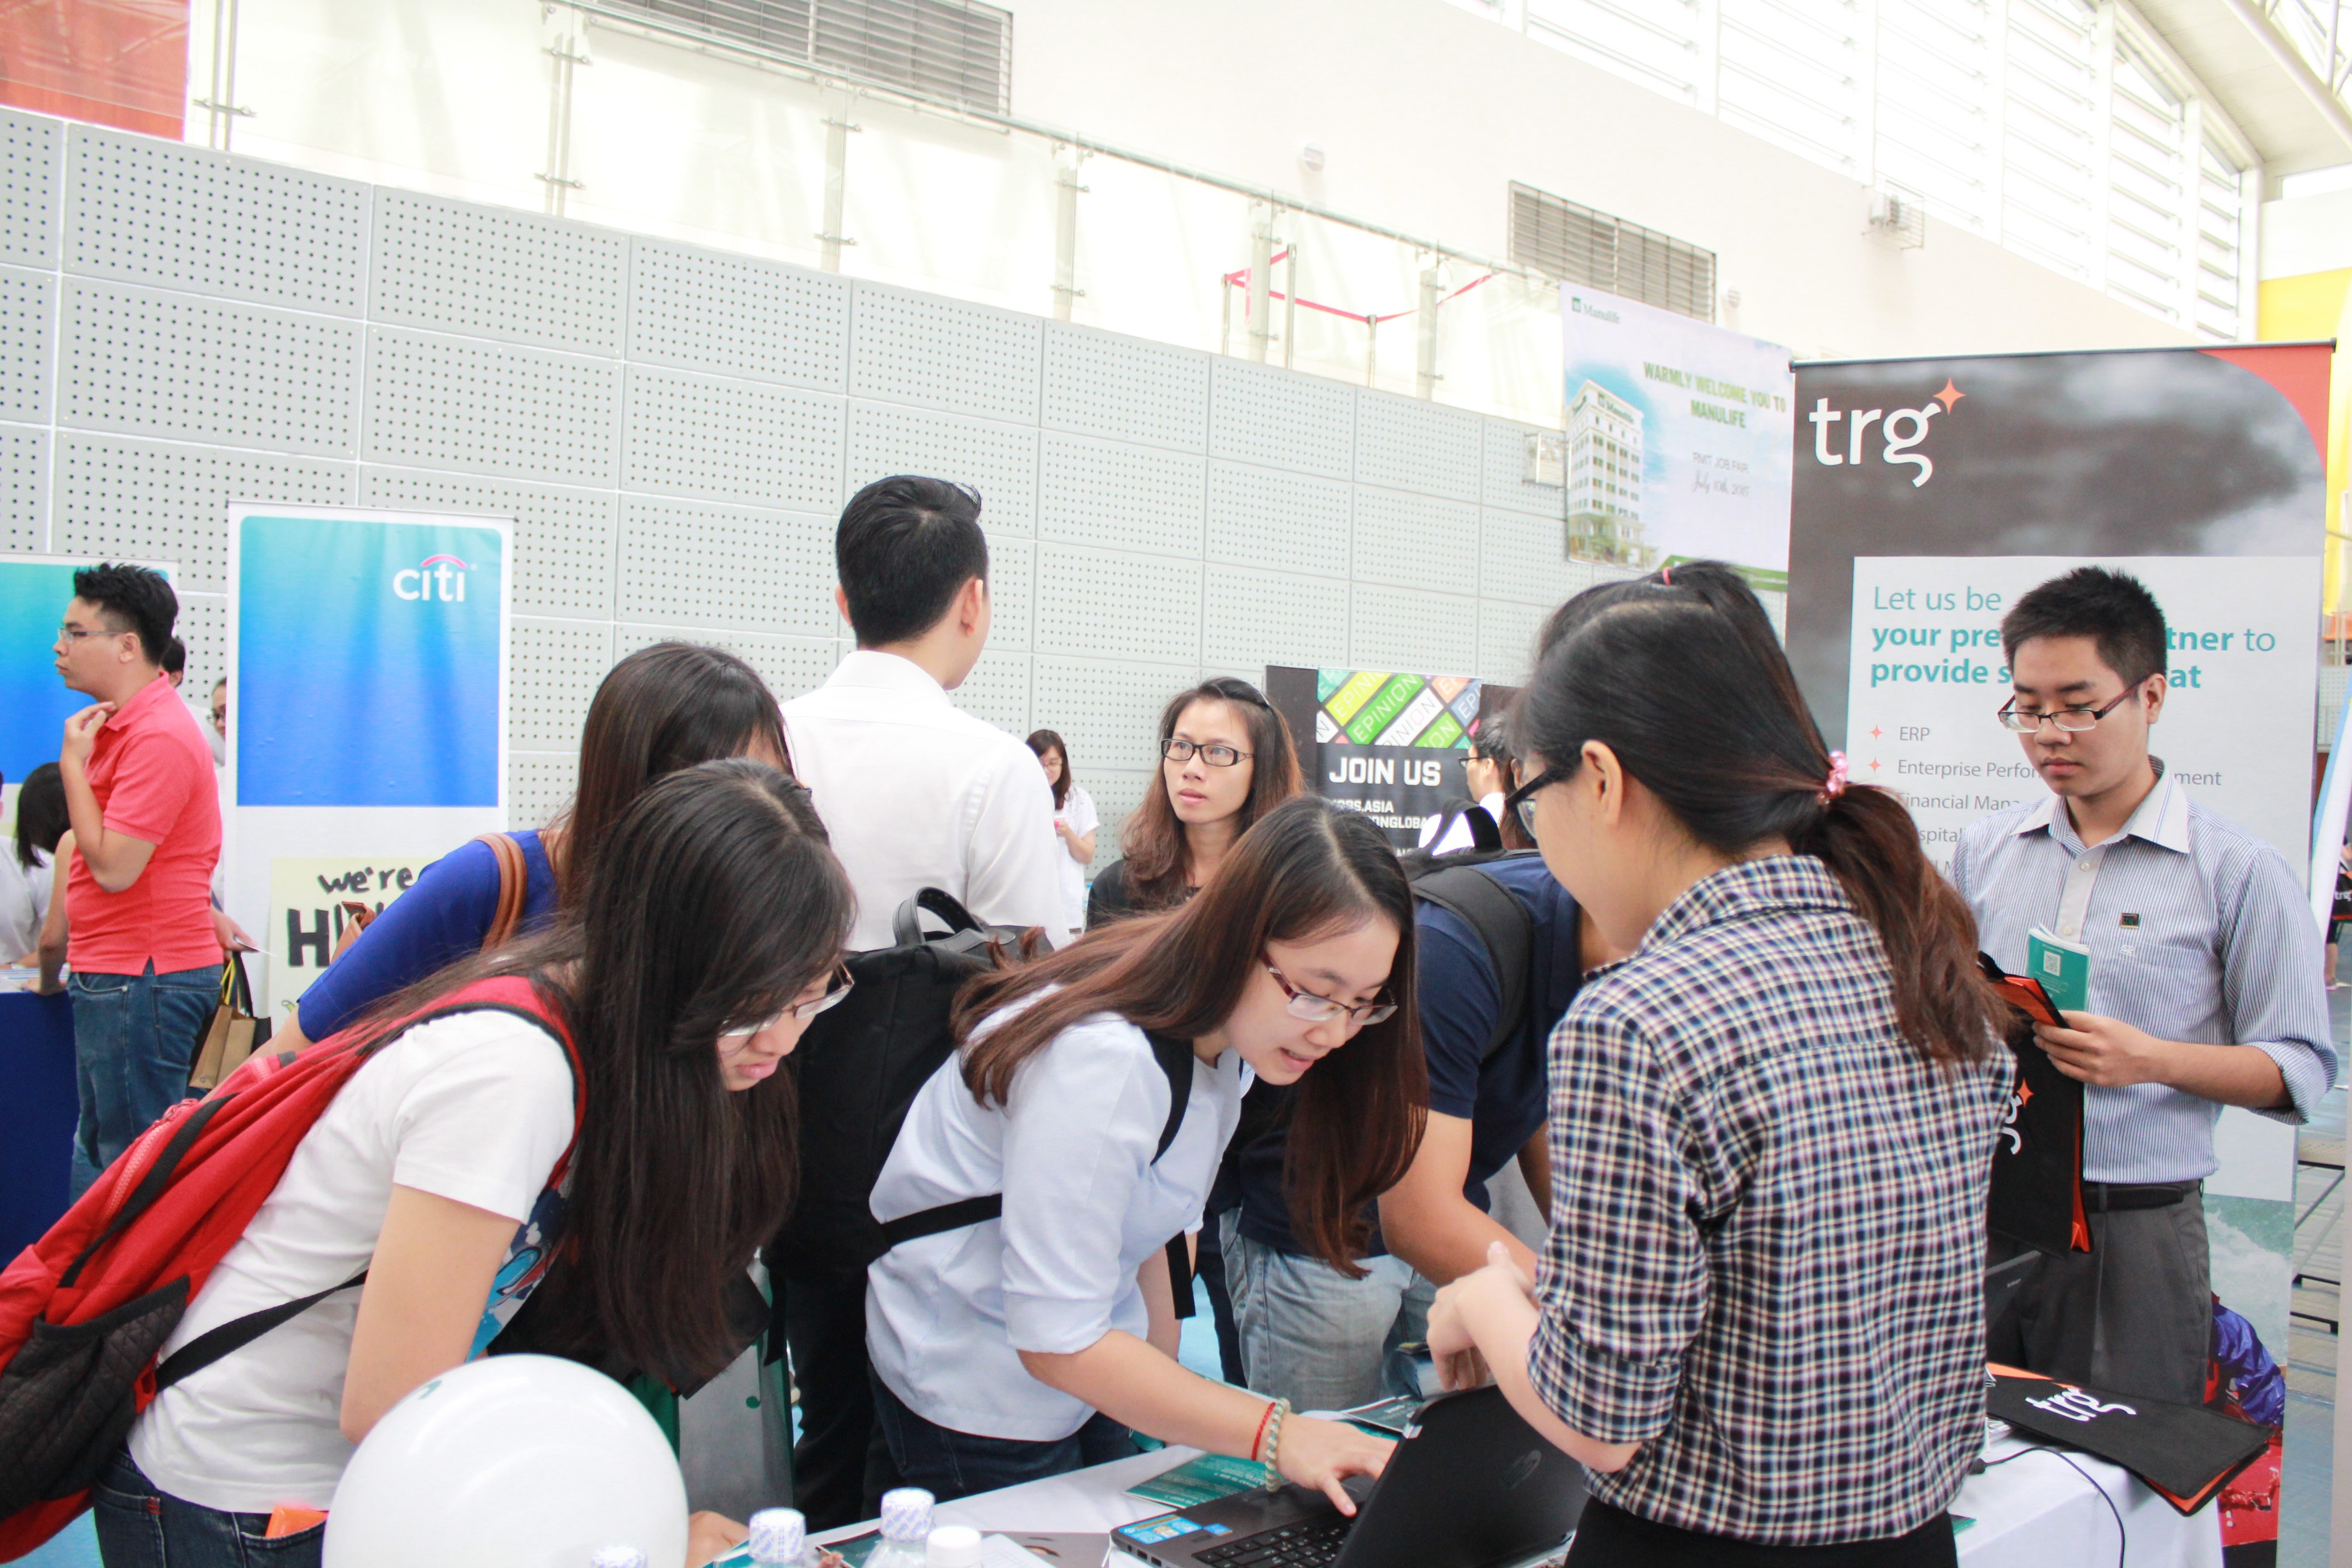 Students were giving information for future employment